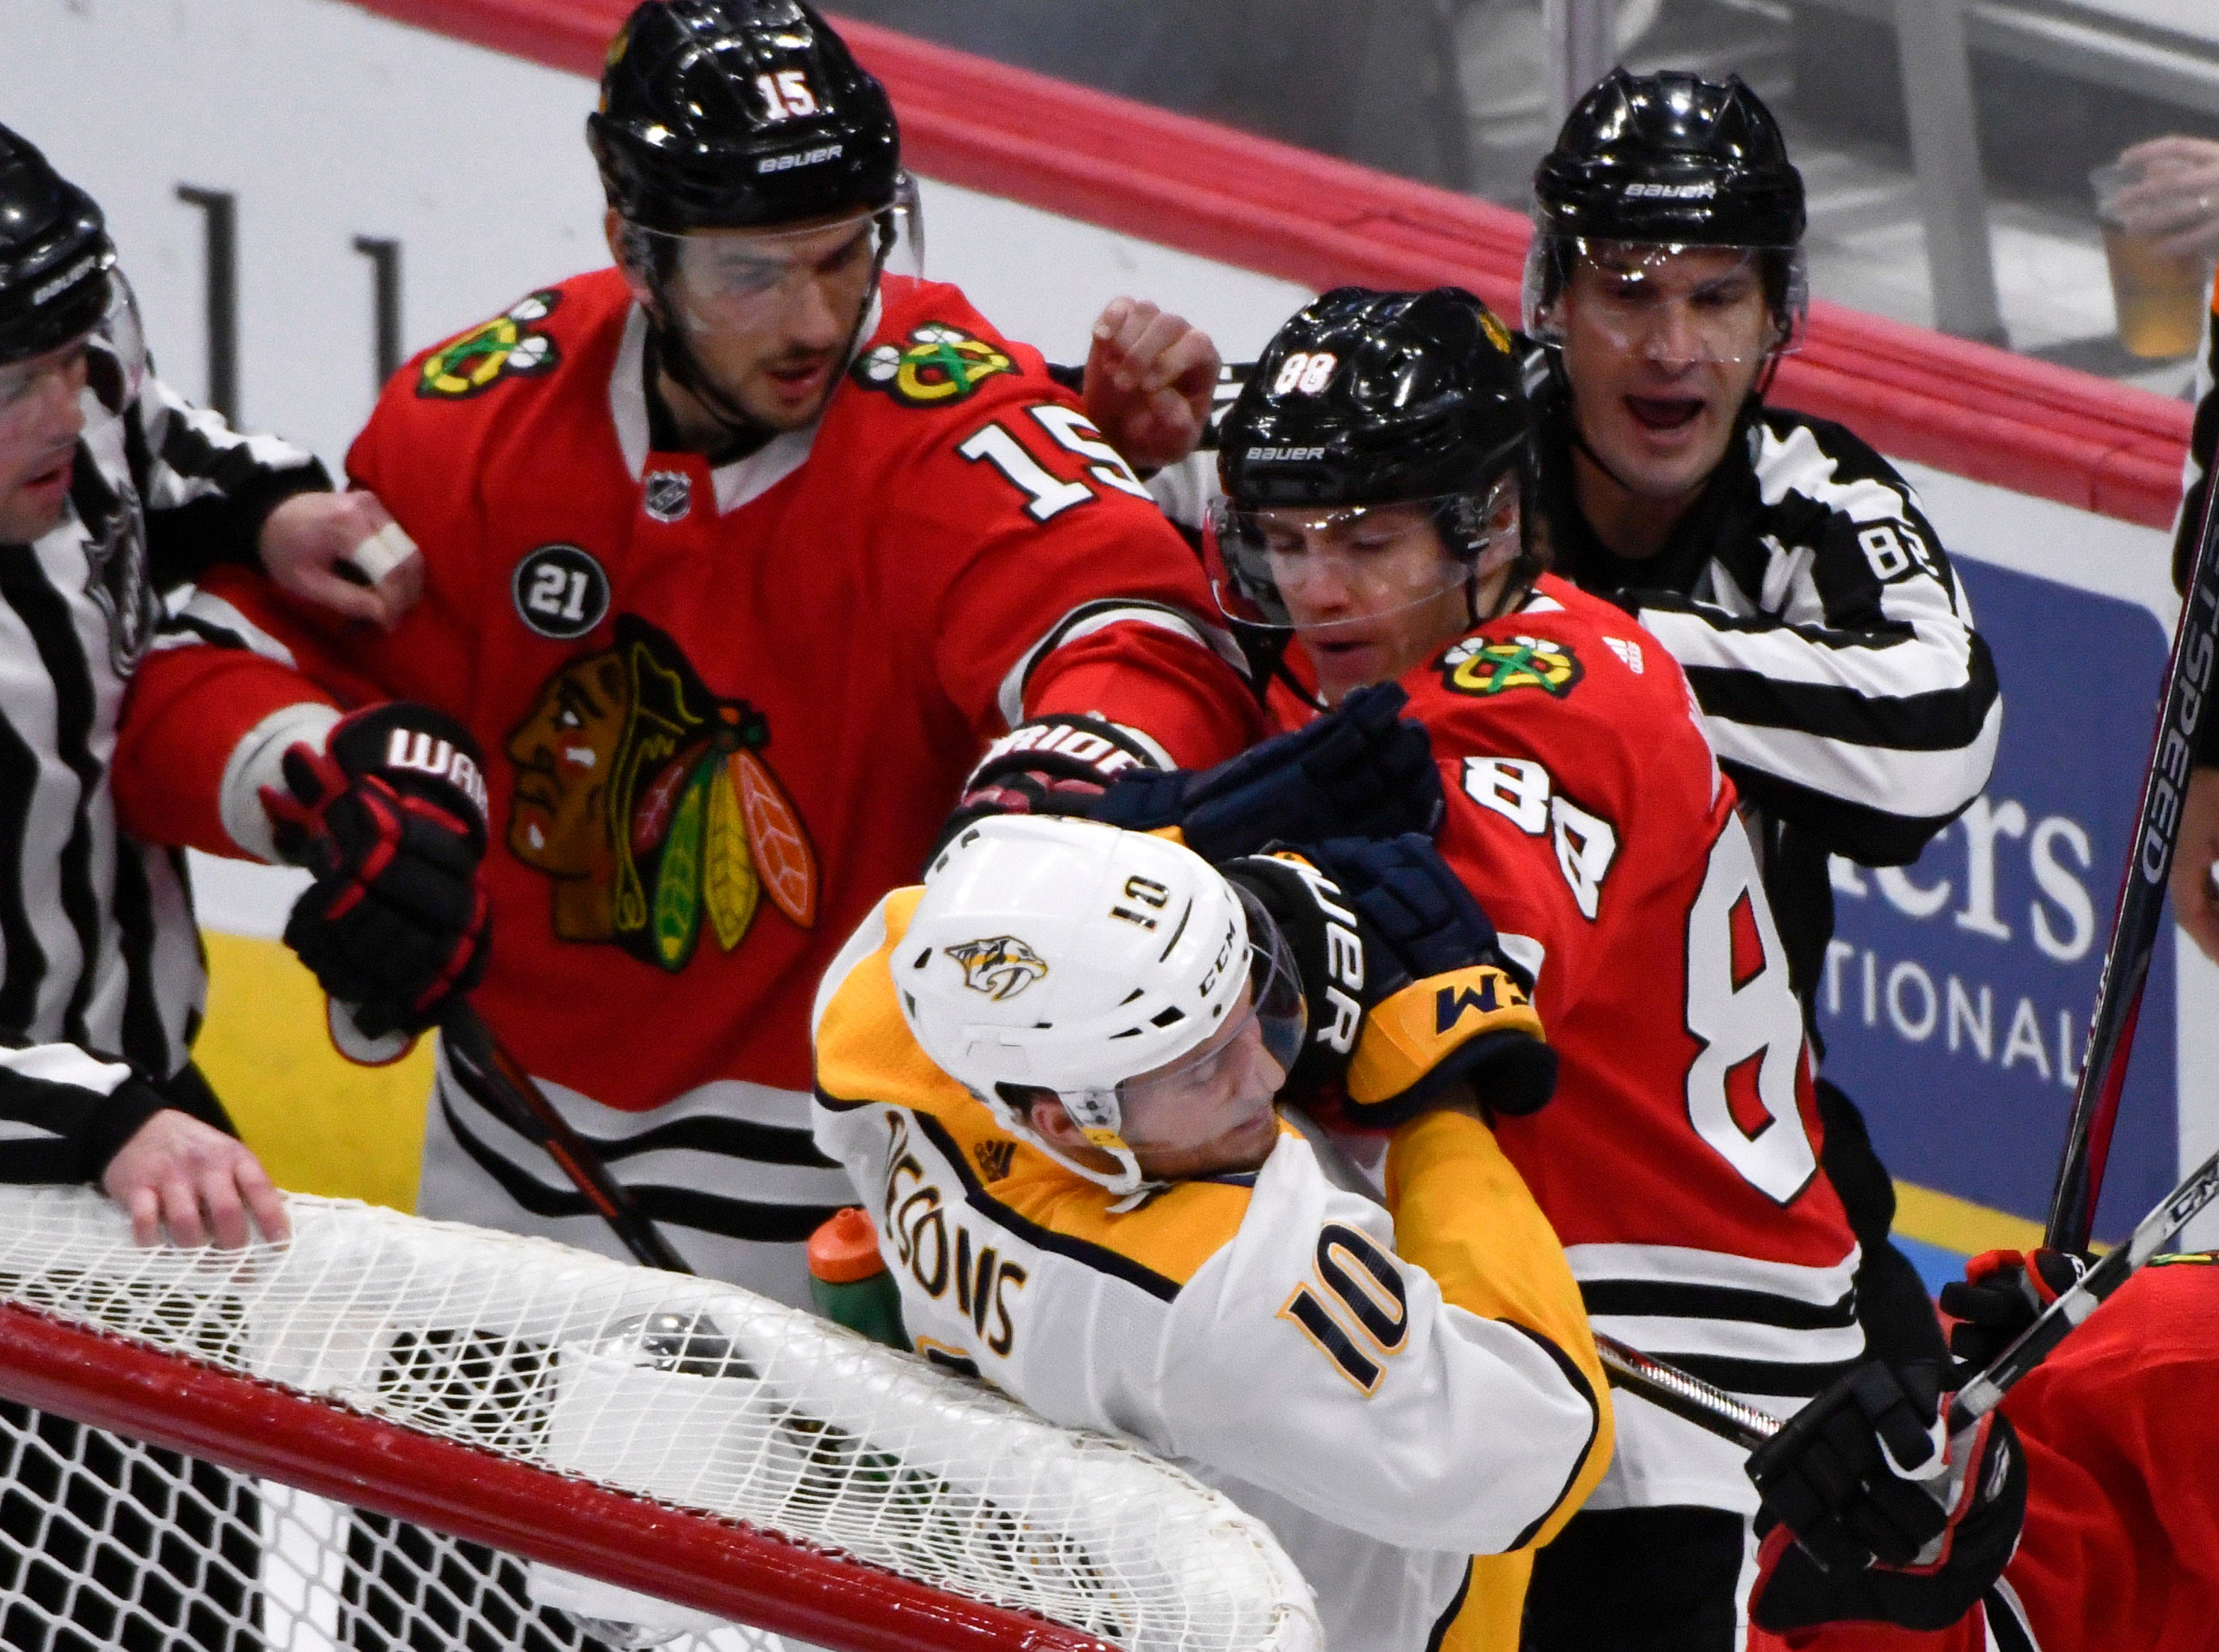 Dec 18, 2018; Chicago, IL, USA;Nashville Predators center Colton Sissons (10) fights with Chicago Blackhawks right wing Patrick Kane (88) and Chicago Blackhawks center Artem Anisimov (15) during the first period at the United Center.